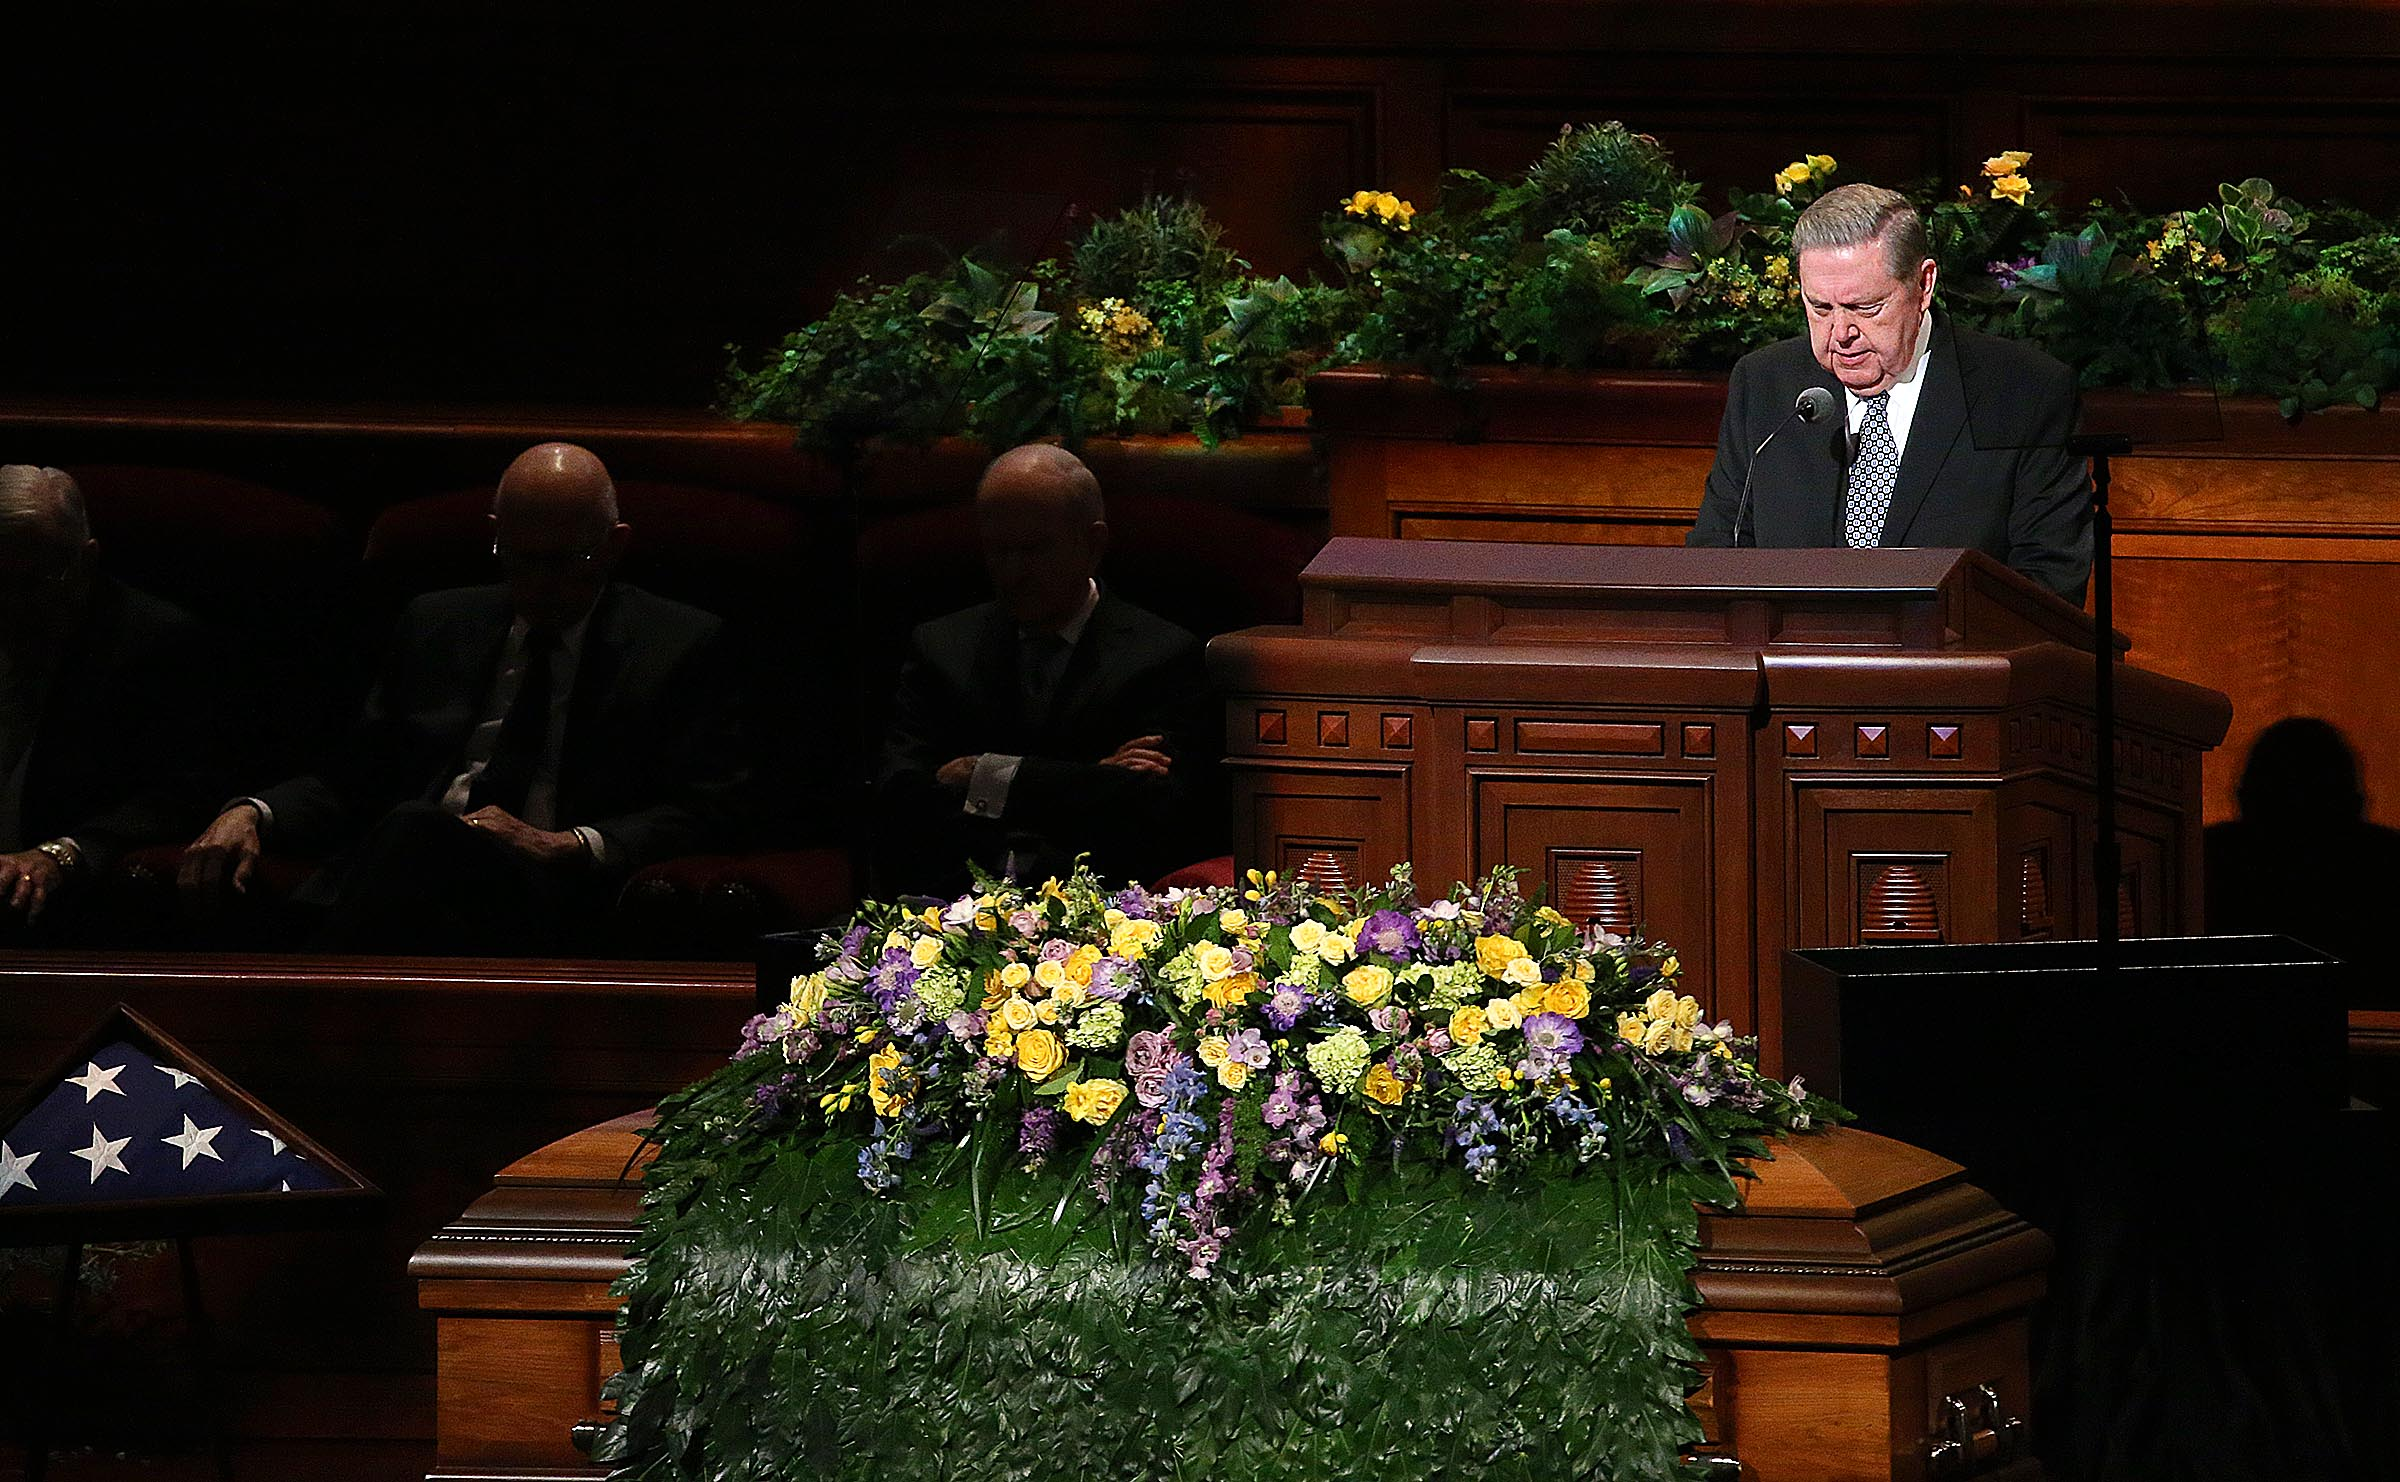 Elder Jeffrey R. Holland, a member of the Church's Quorum of the Twelve Apostles, gives the benediction at President Thomas S. Monson's funeral at the Conference Center in Salt Lake City on Friday, Jan. 12, 2018.